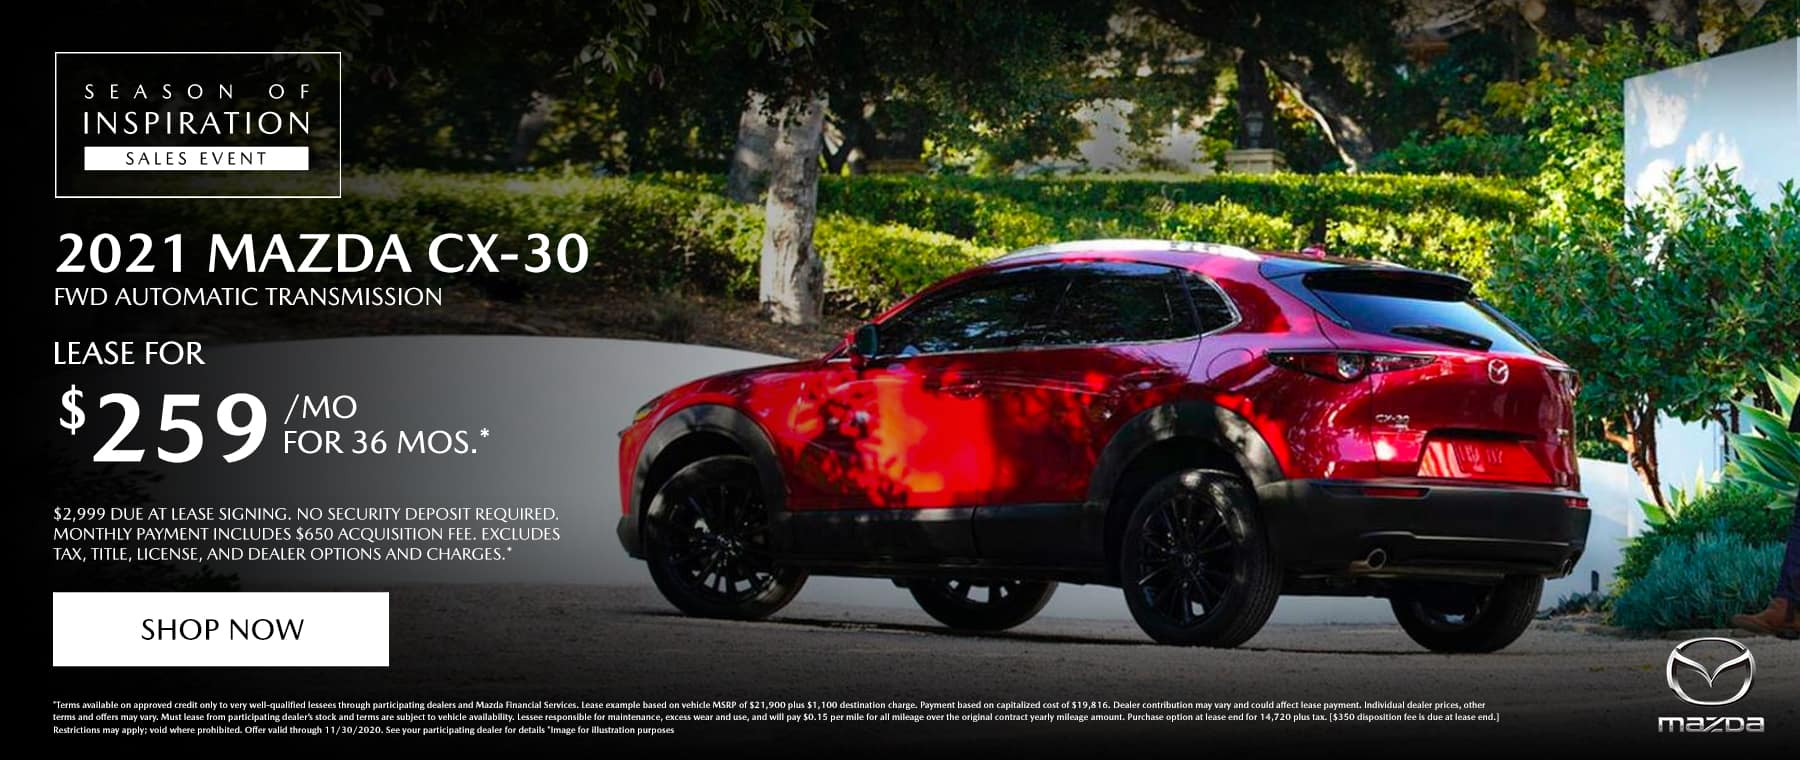 2021 Mazda CX-30 lease for $209 a month / 36 months